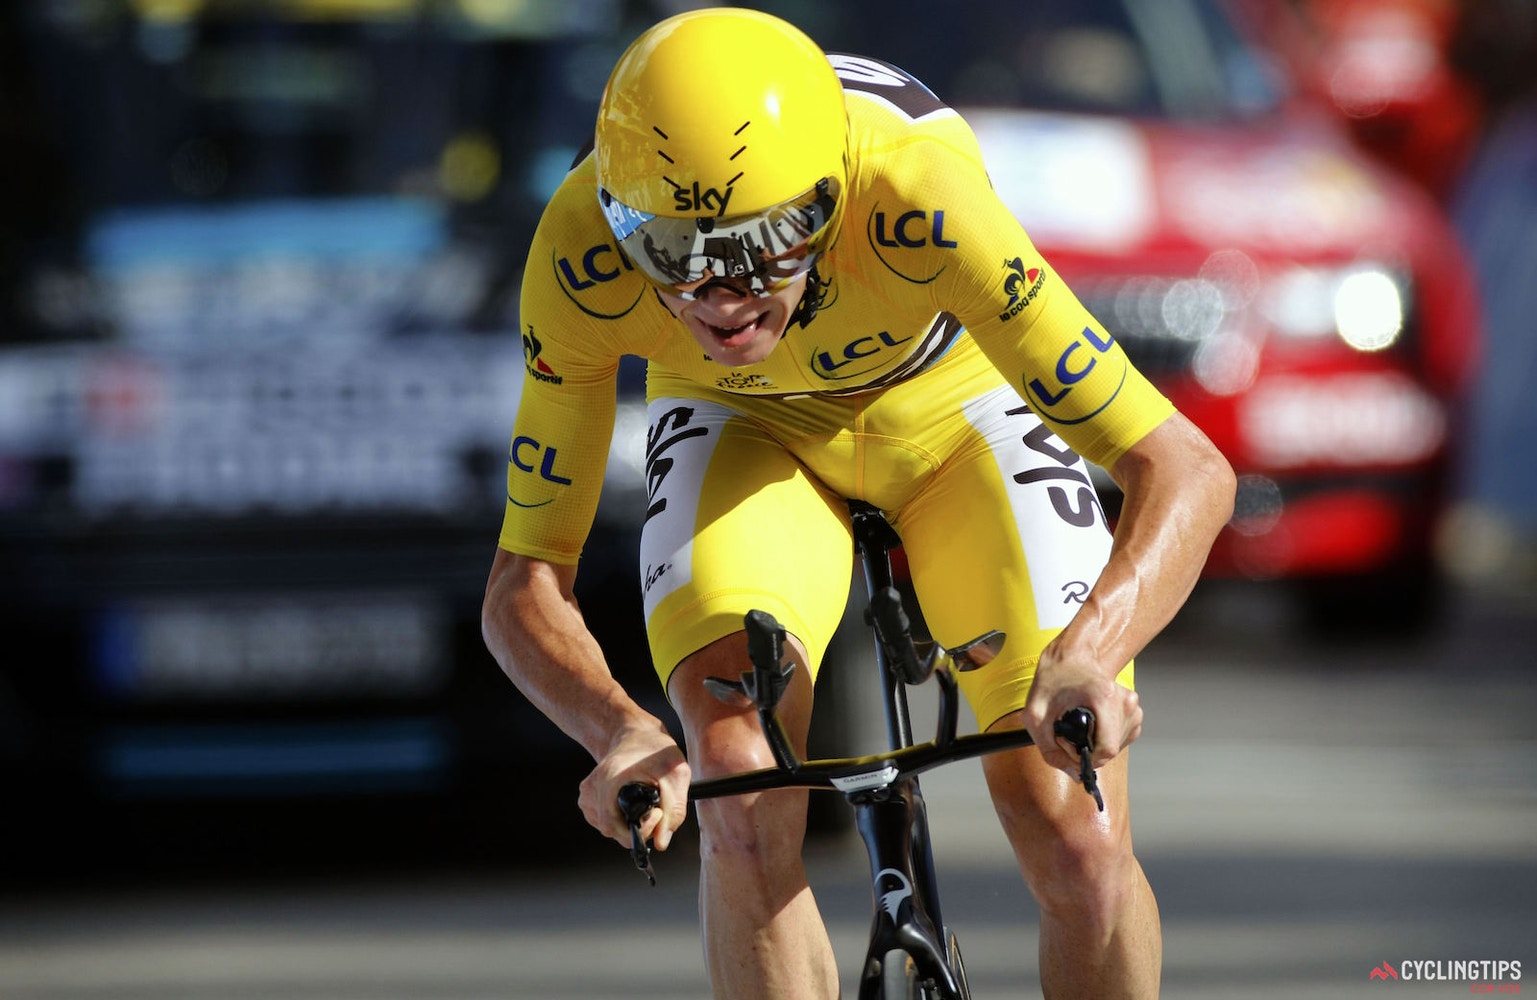 Froome beats Dumoulin to win Tour de France TT as podium battle tightens